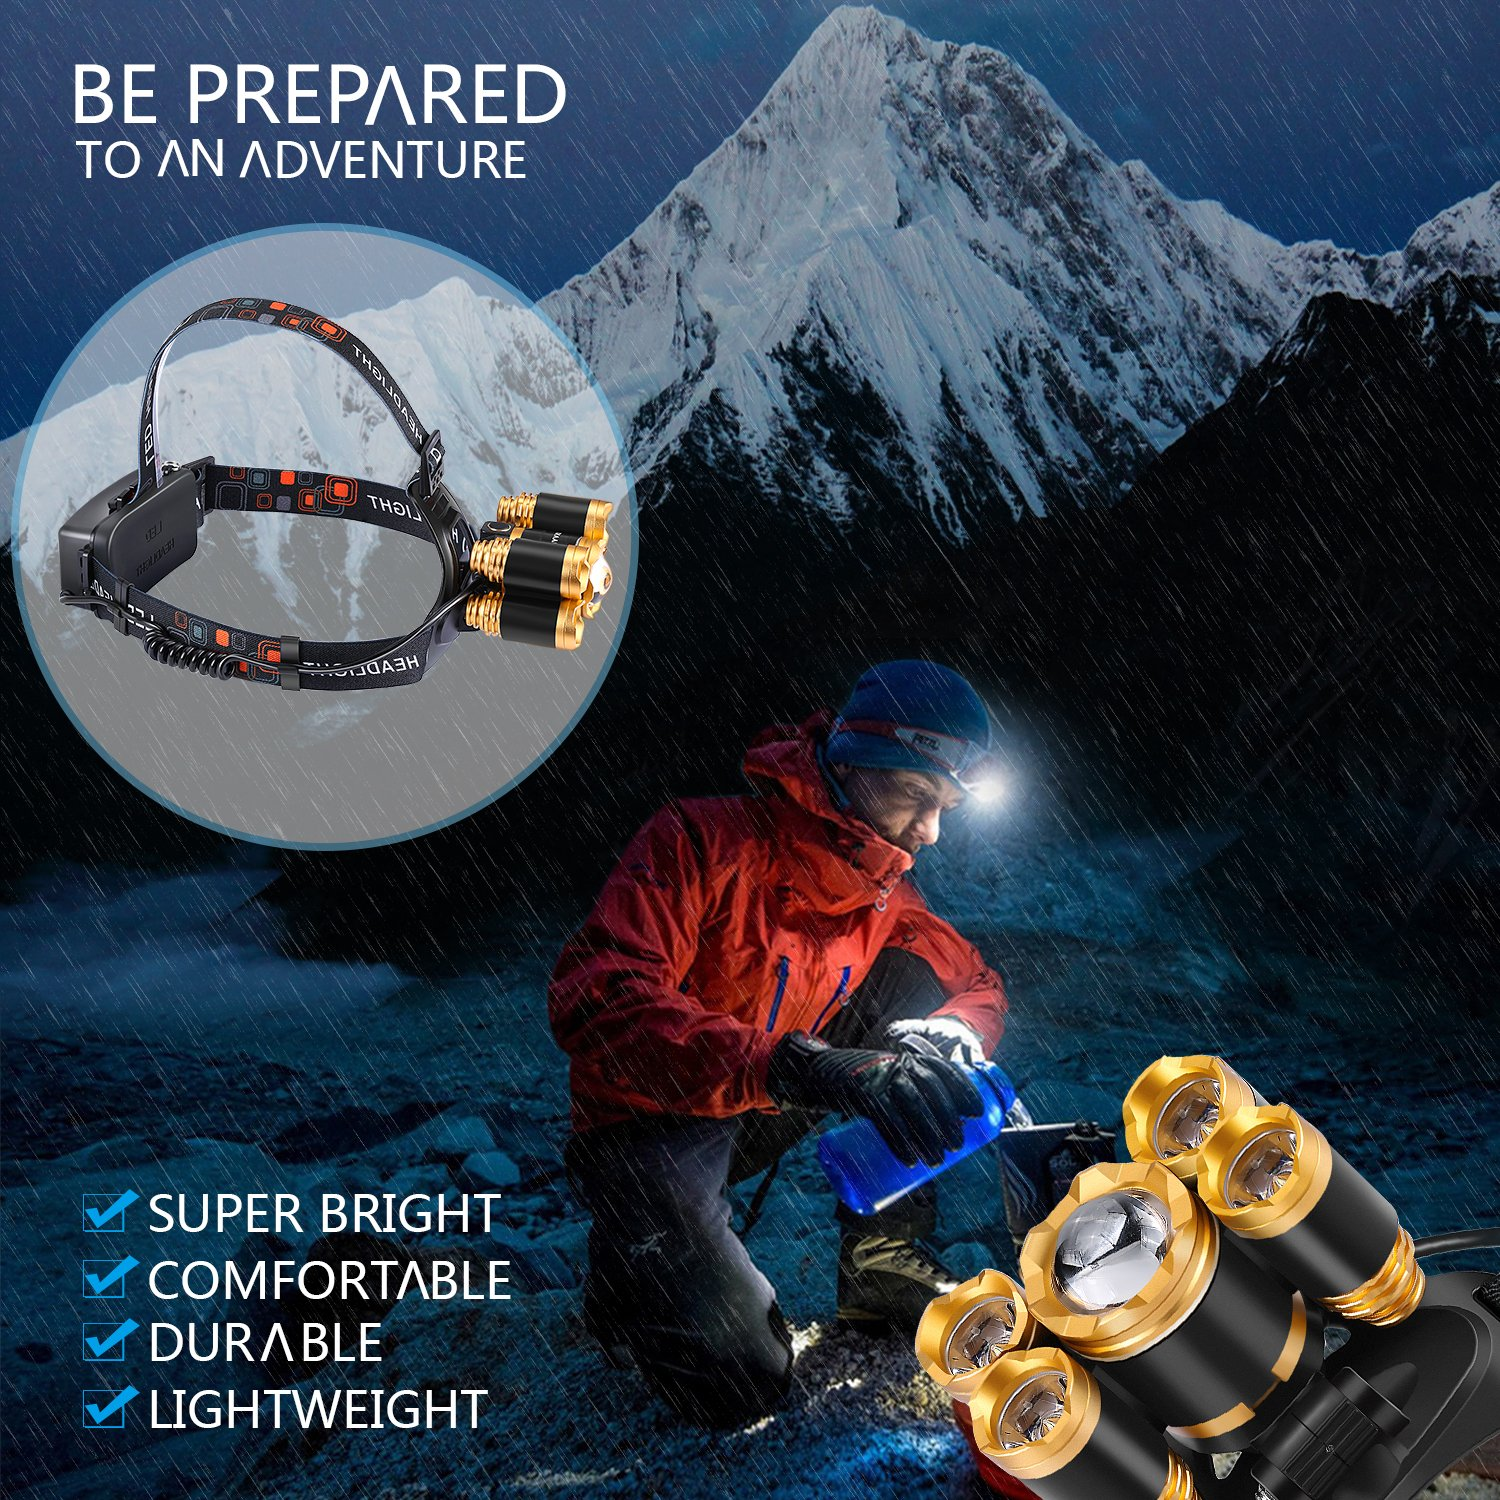 Rechargeable LED headlamp, Zukvye Super Bright 5 LED Headlight Zoomable Waterproof CREE Headlamps Flashlight for Cycling, Running, Dog Walking, Camping, Hiking, Fishing, Night Reading and DIY Works by Zukvye (Image #6)